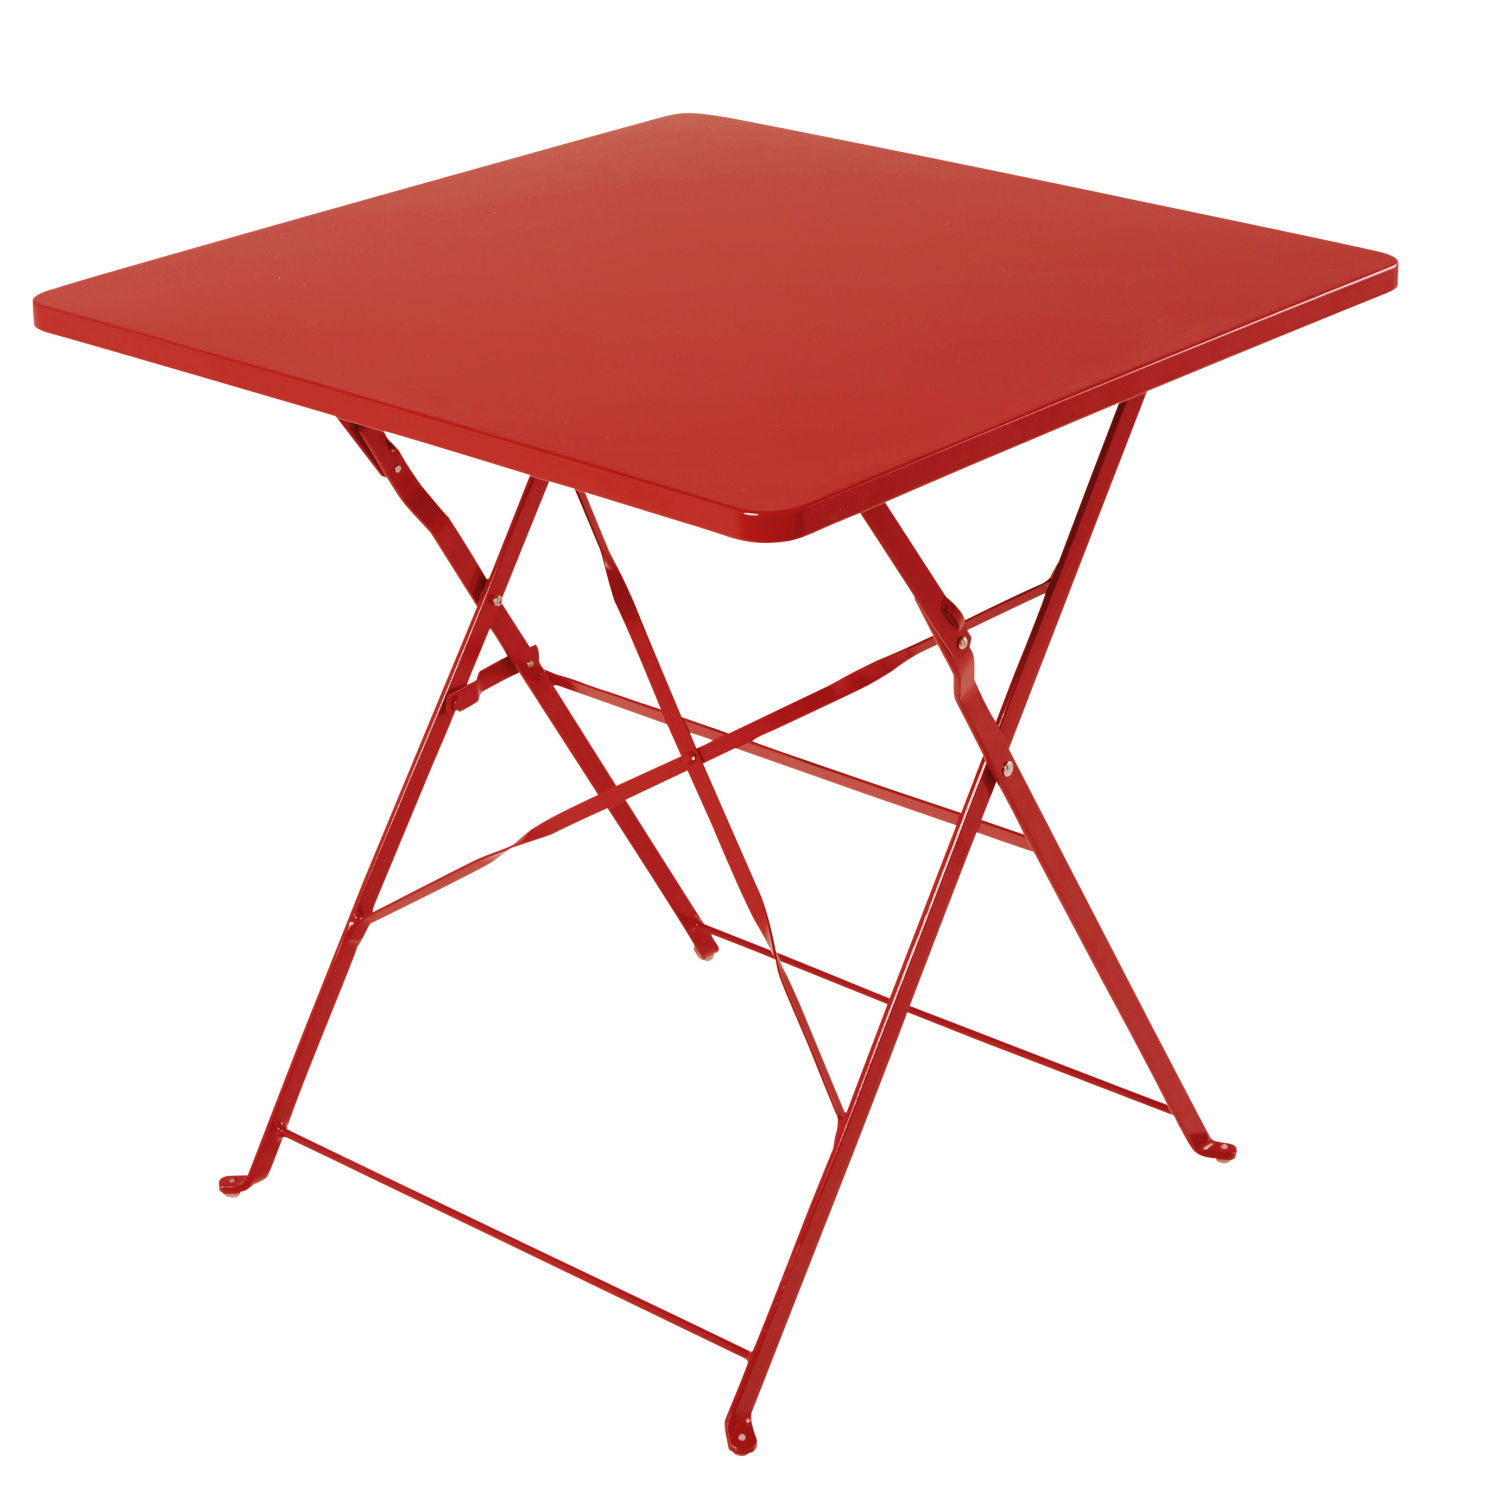 Table De Jardin Rouge Table De Jardin Aluminium Maison Du Monde